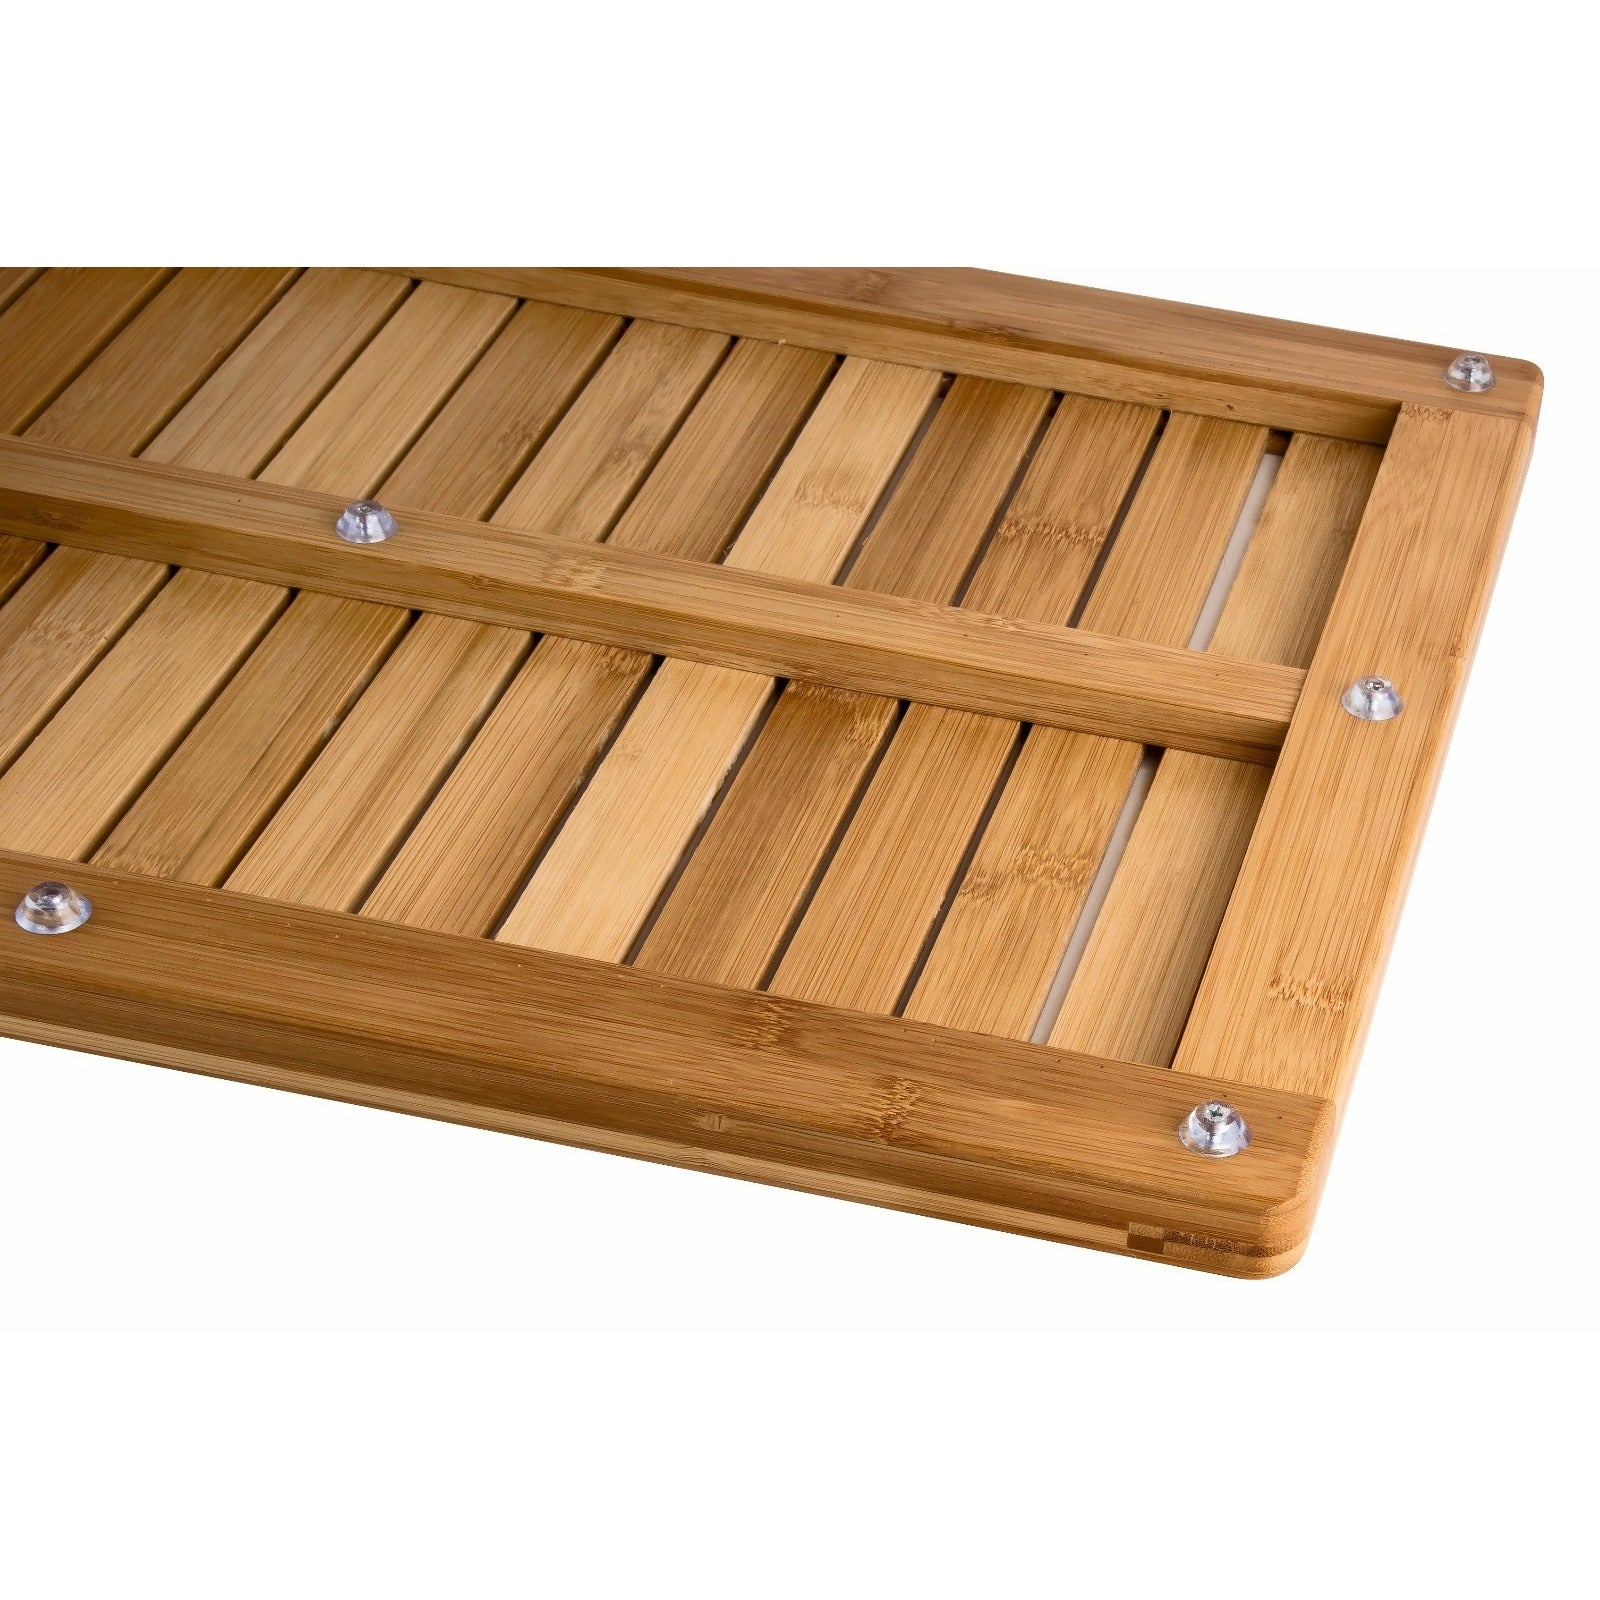 Shop Bamboo Floor and Shower Mat - On Sale - Free Shipping On Orders ...